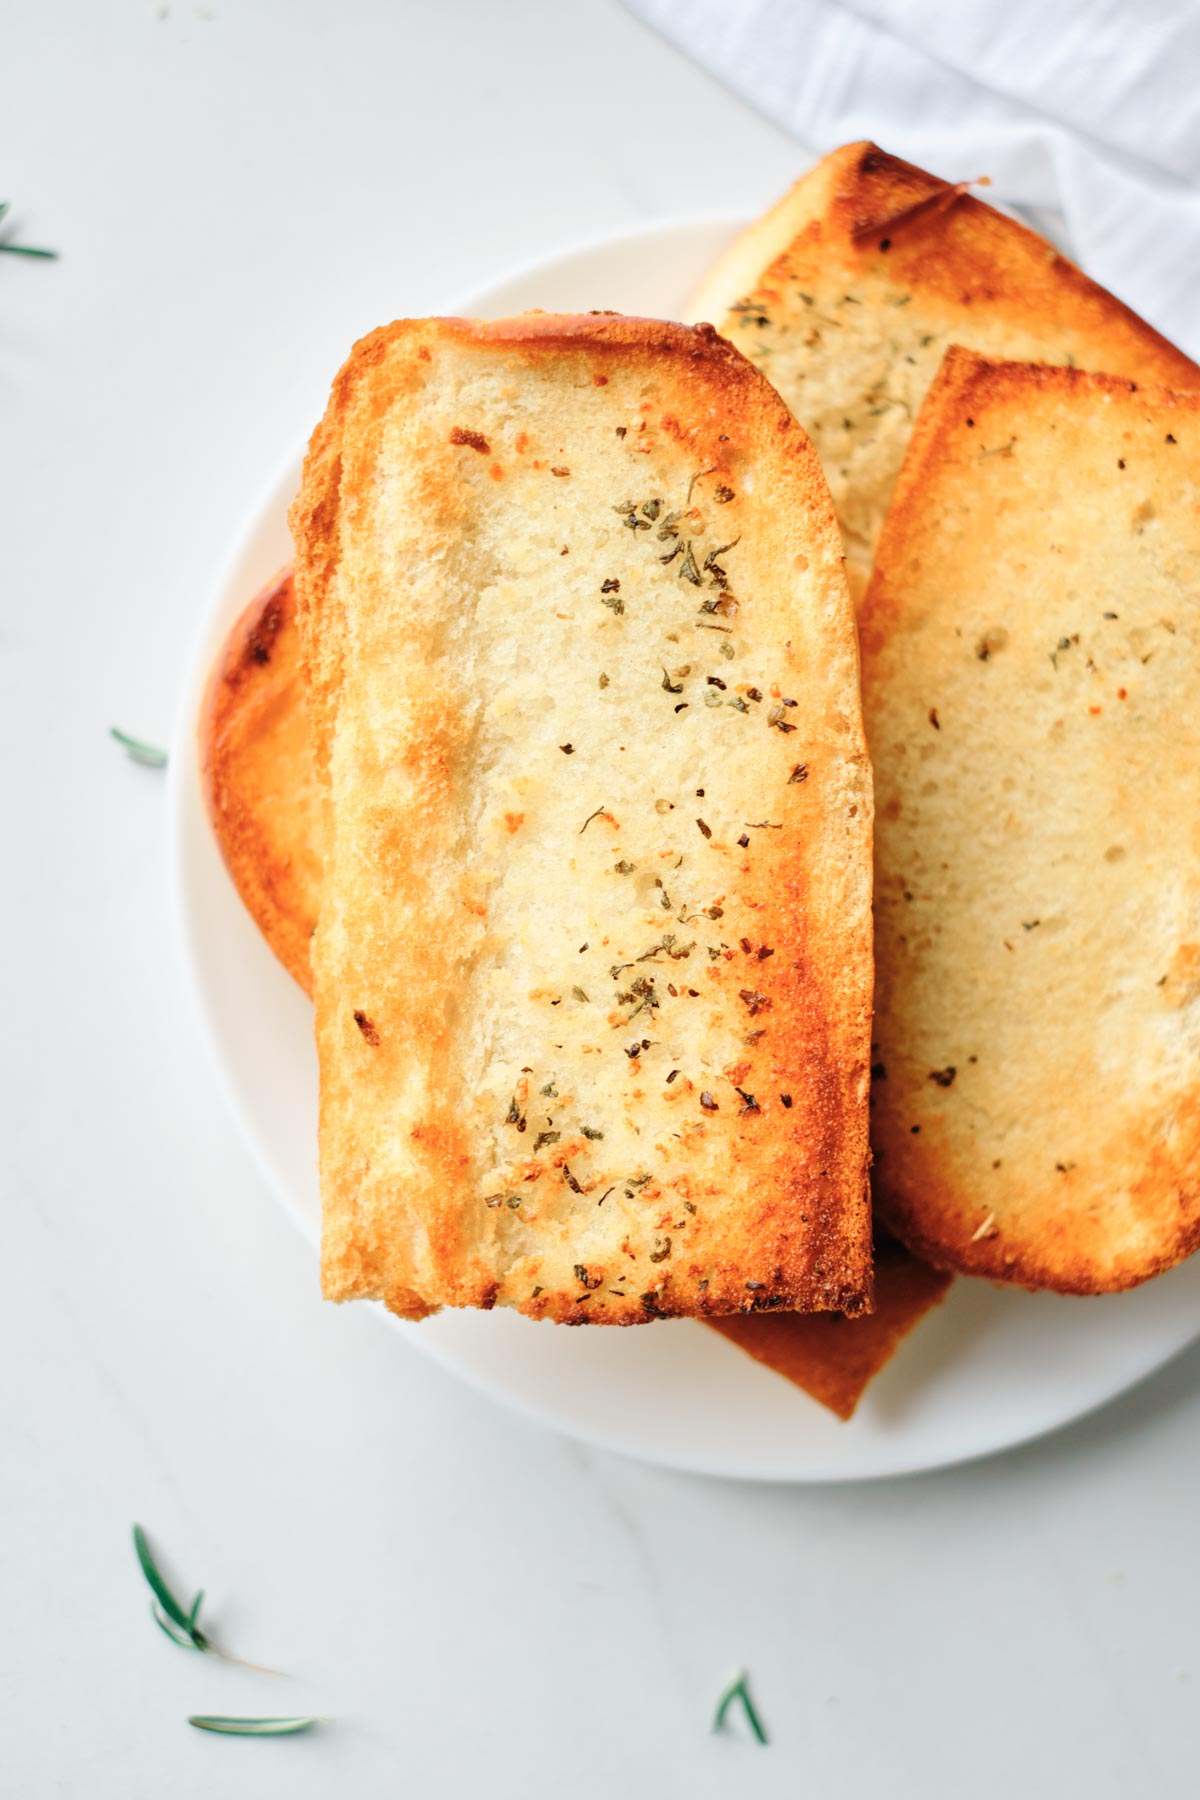 the finished version of frozen garlic bread in air fryer served on a whiter plate